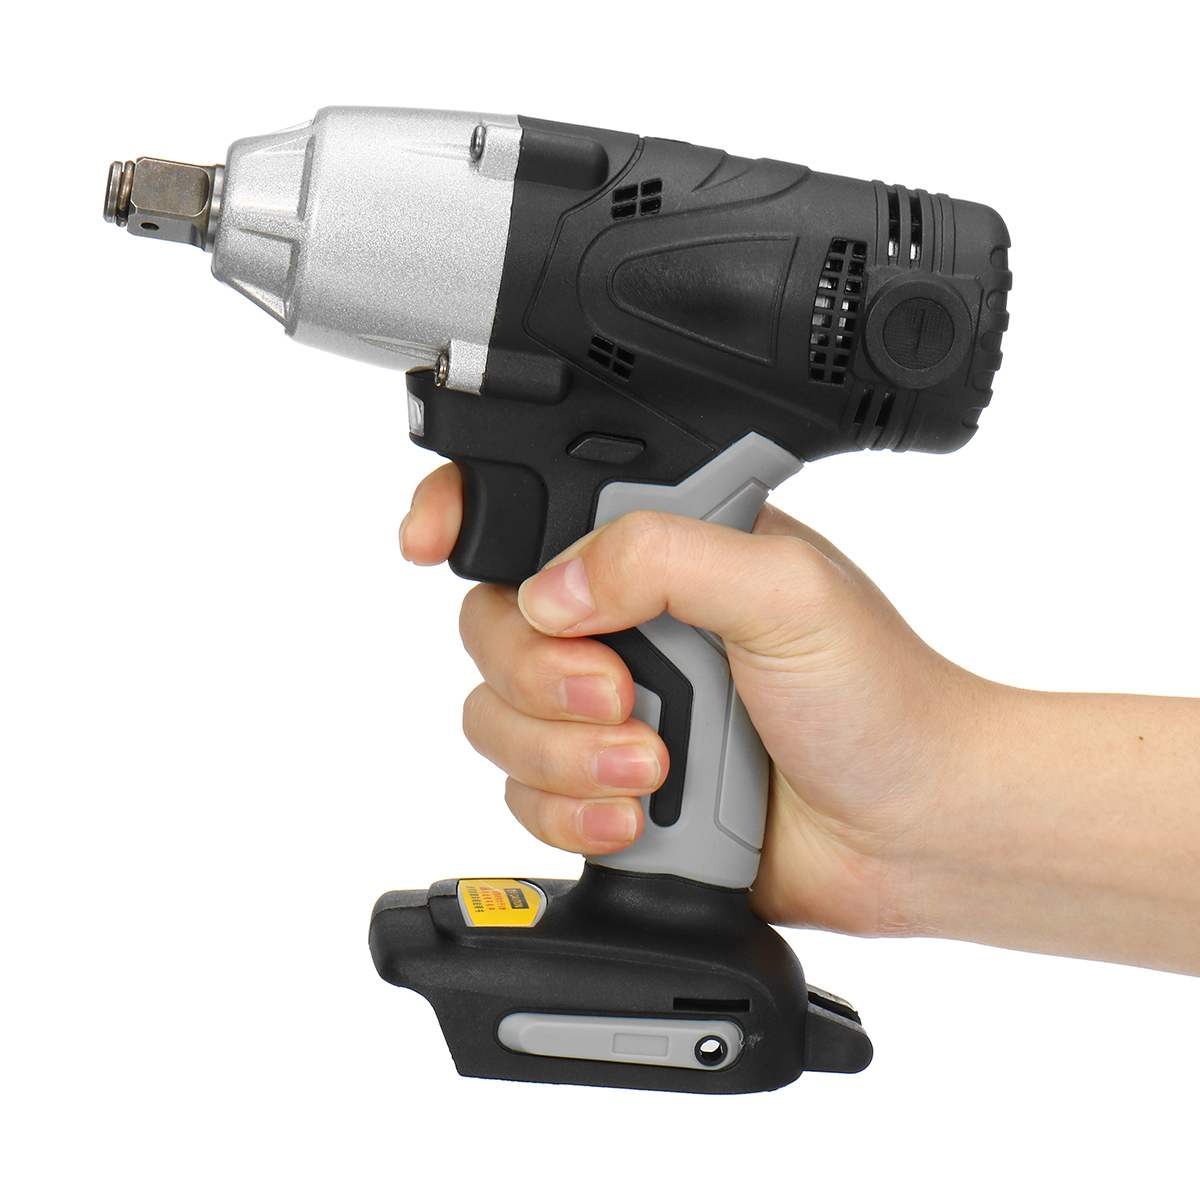 18V <font><b>480Nm</b></font> 3600rpm Cordless Electric Screwdriver Speed Impact Wrench Rechargable Drill Driver+ <font><b>LED</b></font> Light For Makita Battery image